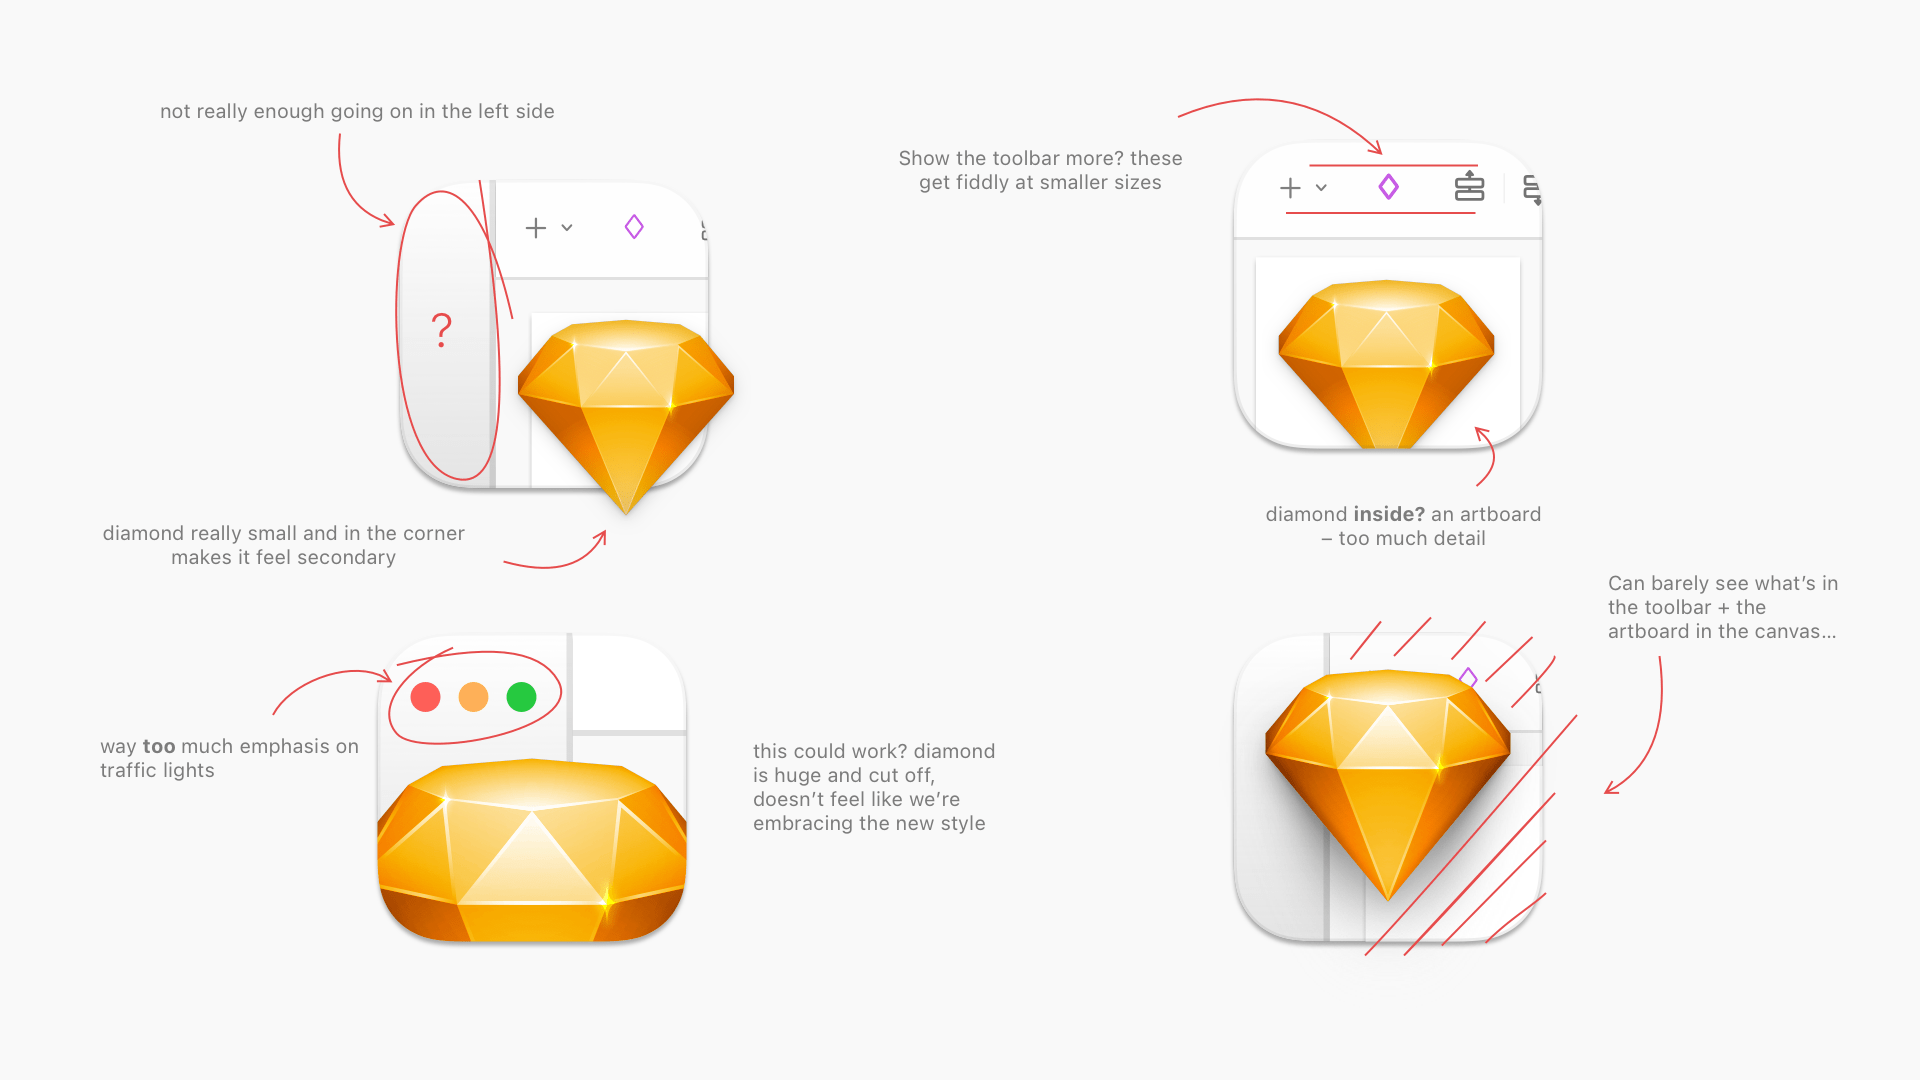 An image showing different ways of using the diamond overlaid on an illustrated version of the Sketch UI, with annotations explaining the pros and cons of each approach.